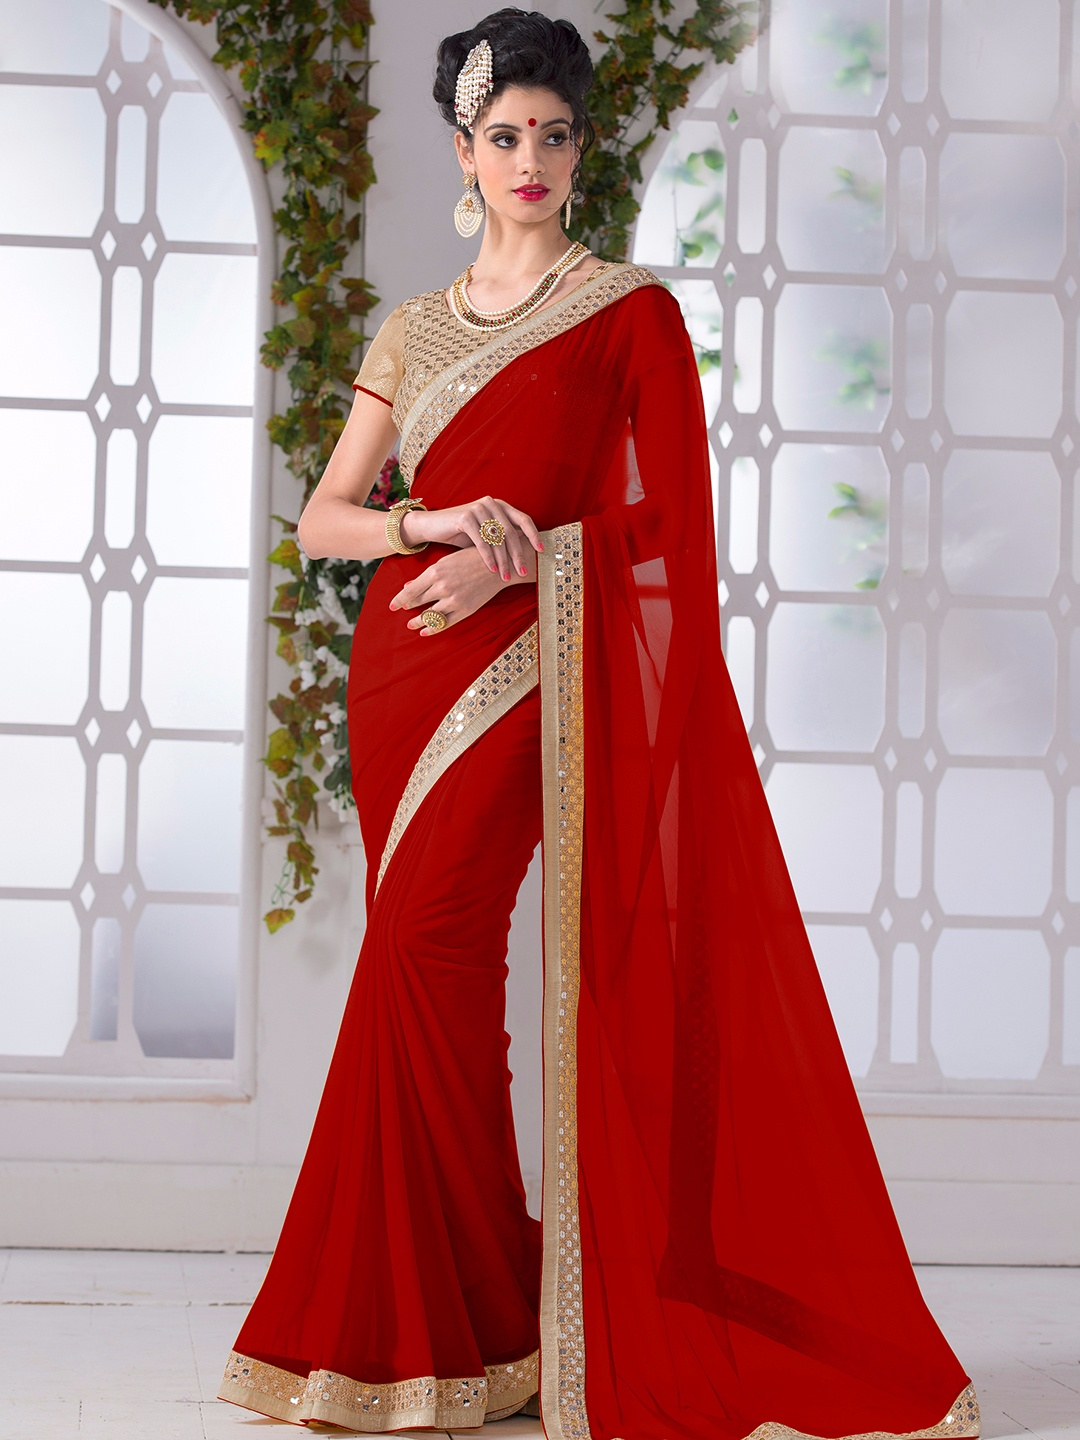 15 red color beautiful sarees for wedding parties g3fashion red chiffon plain saree for festivals and wedding ombrellifo Images